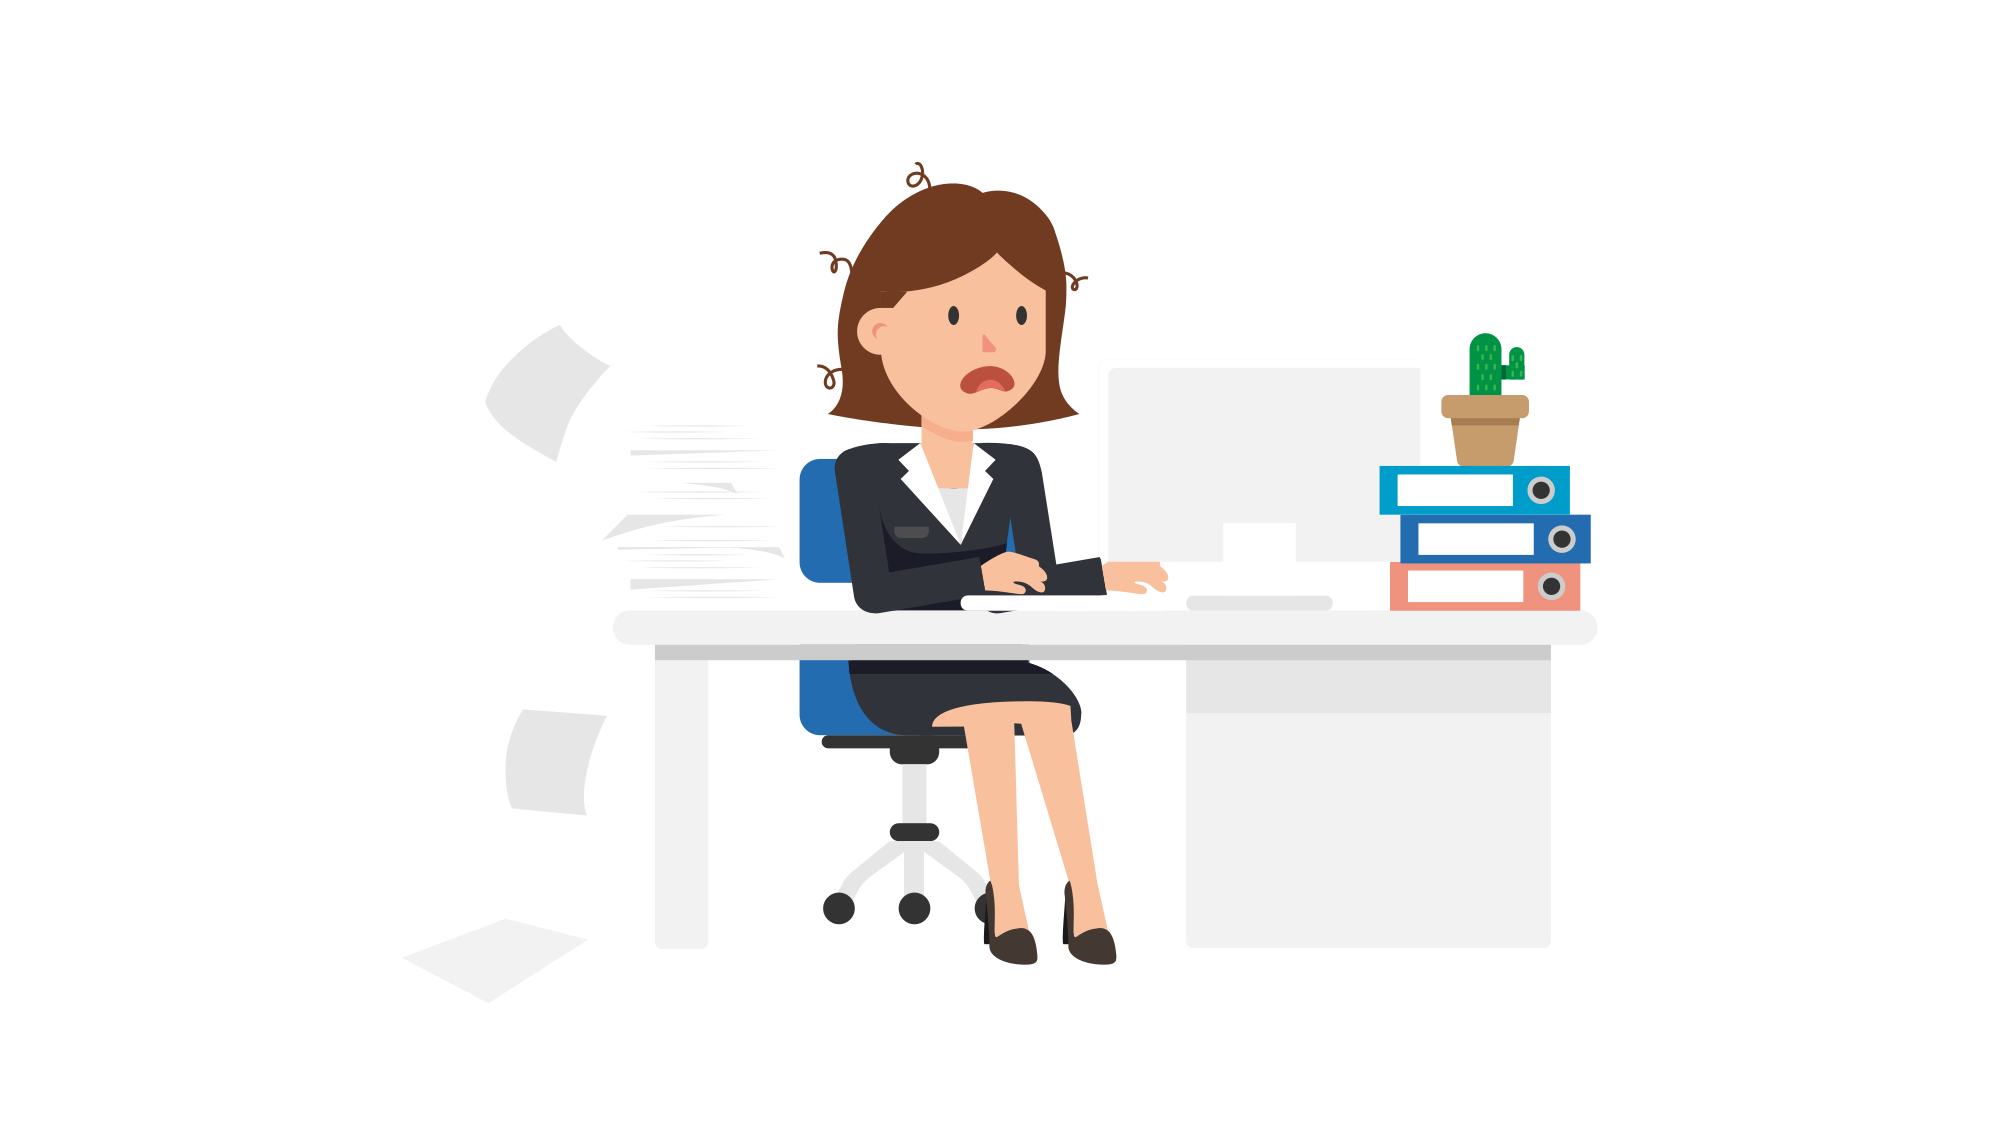 Stress clipart computer stress. File corporate woman being